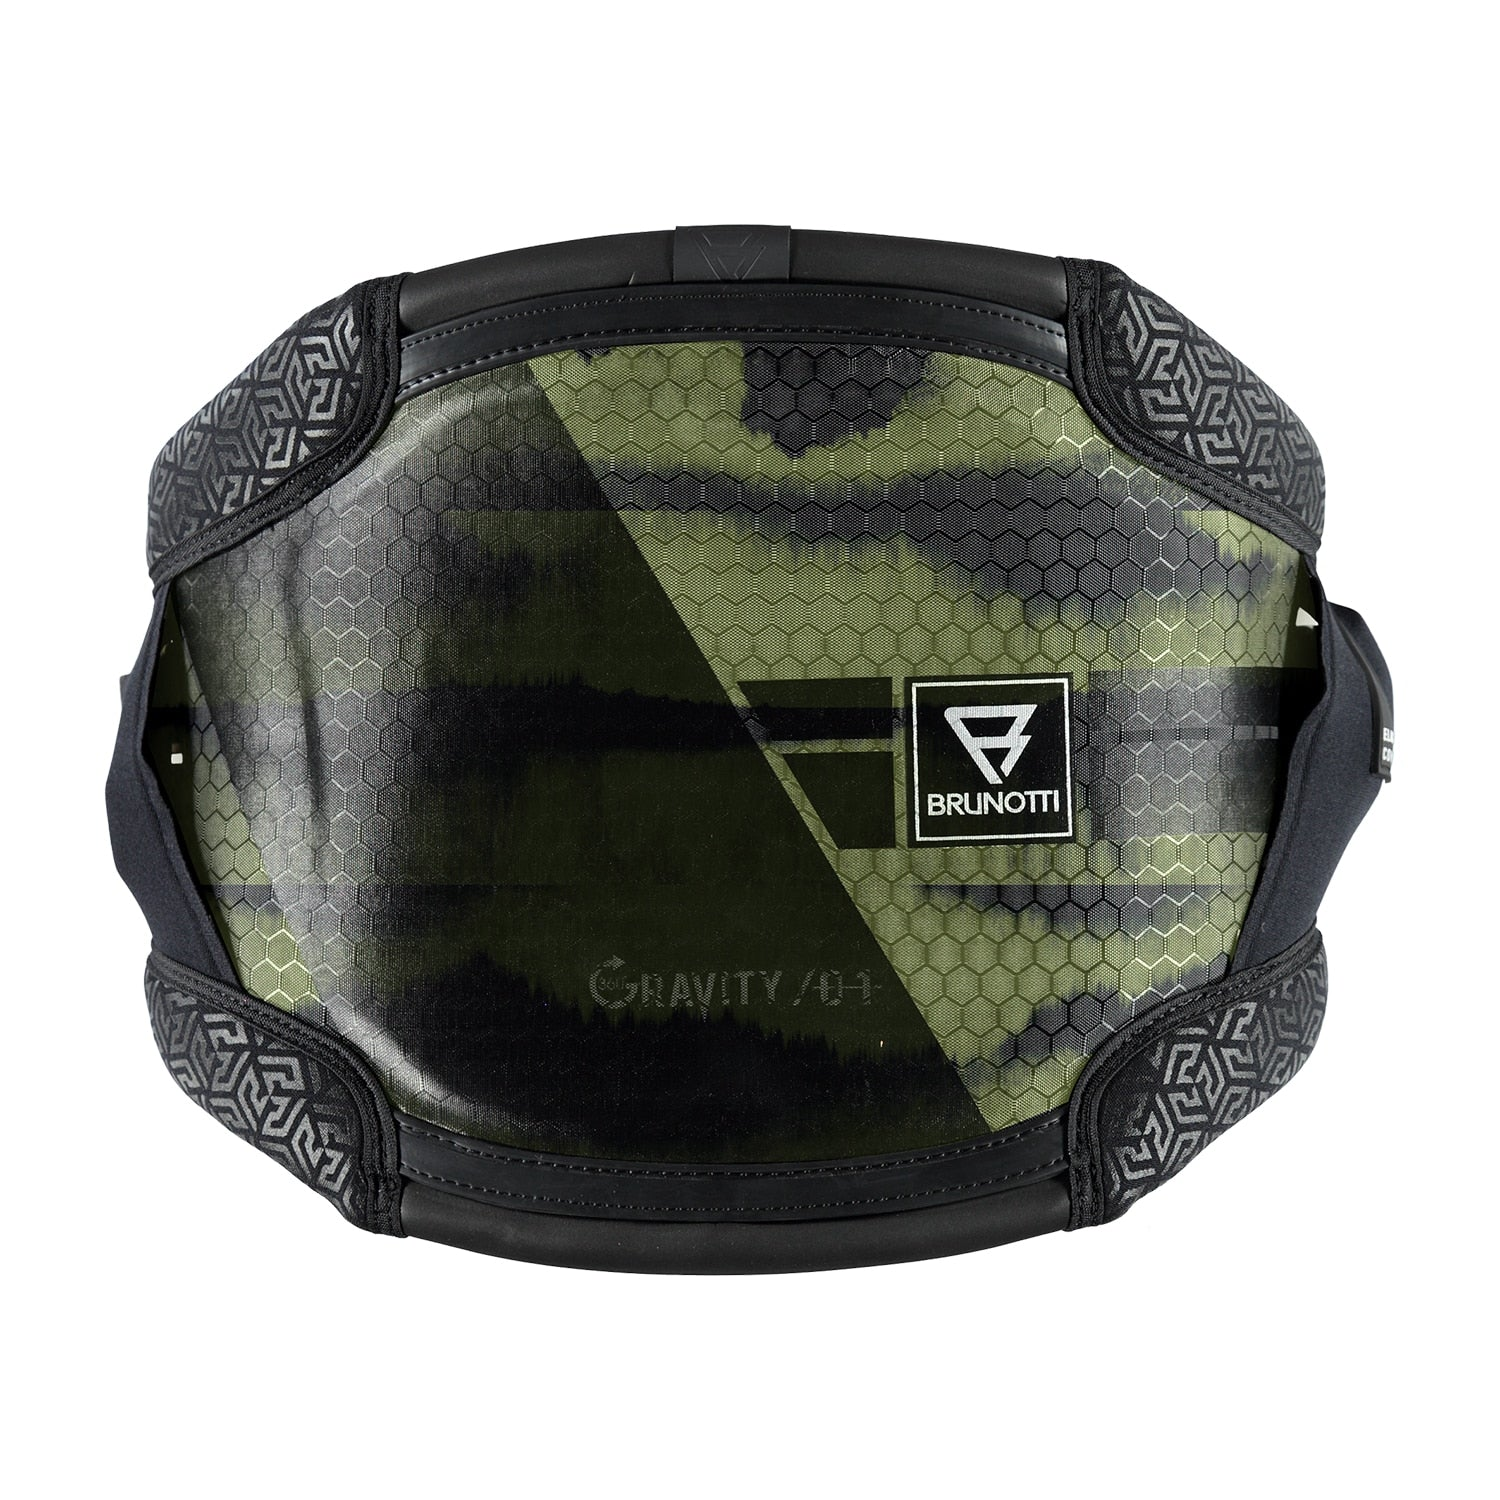 Brunotti Gravity 01 Multi-Use Waist Harness  Green - Guincho Wind Factory